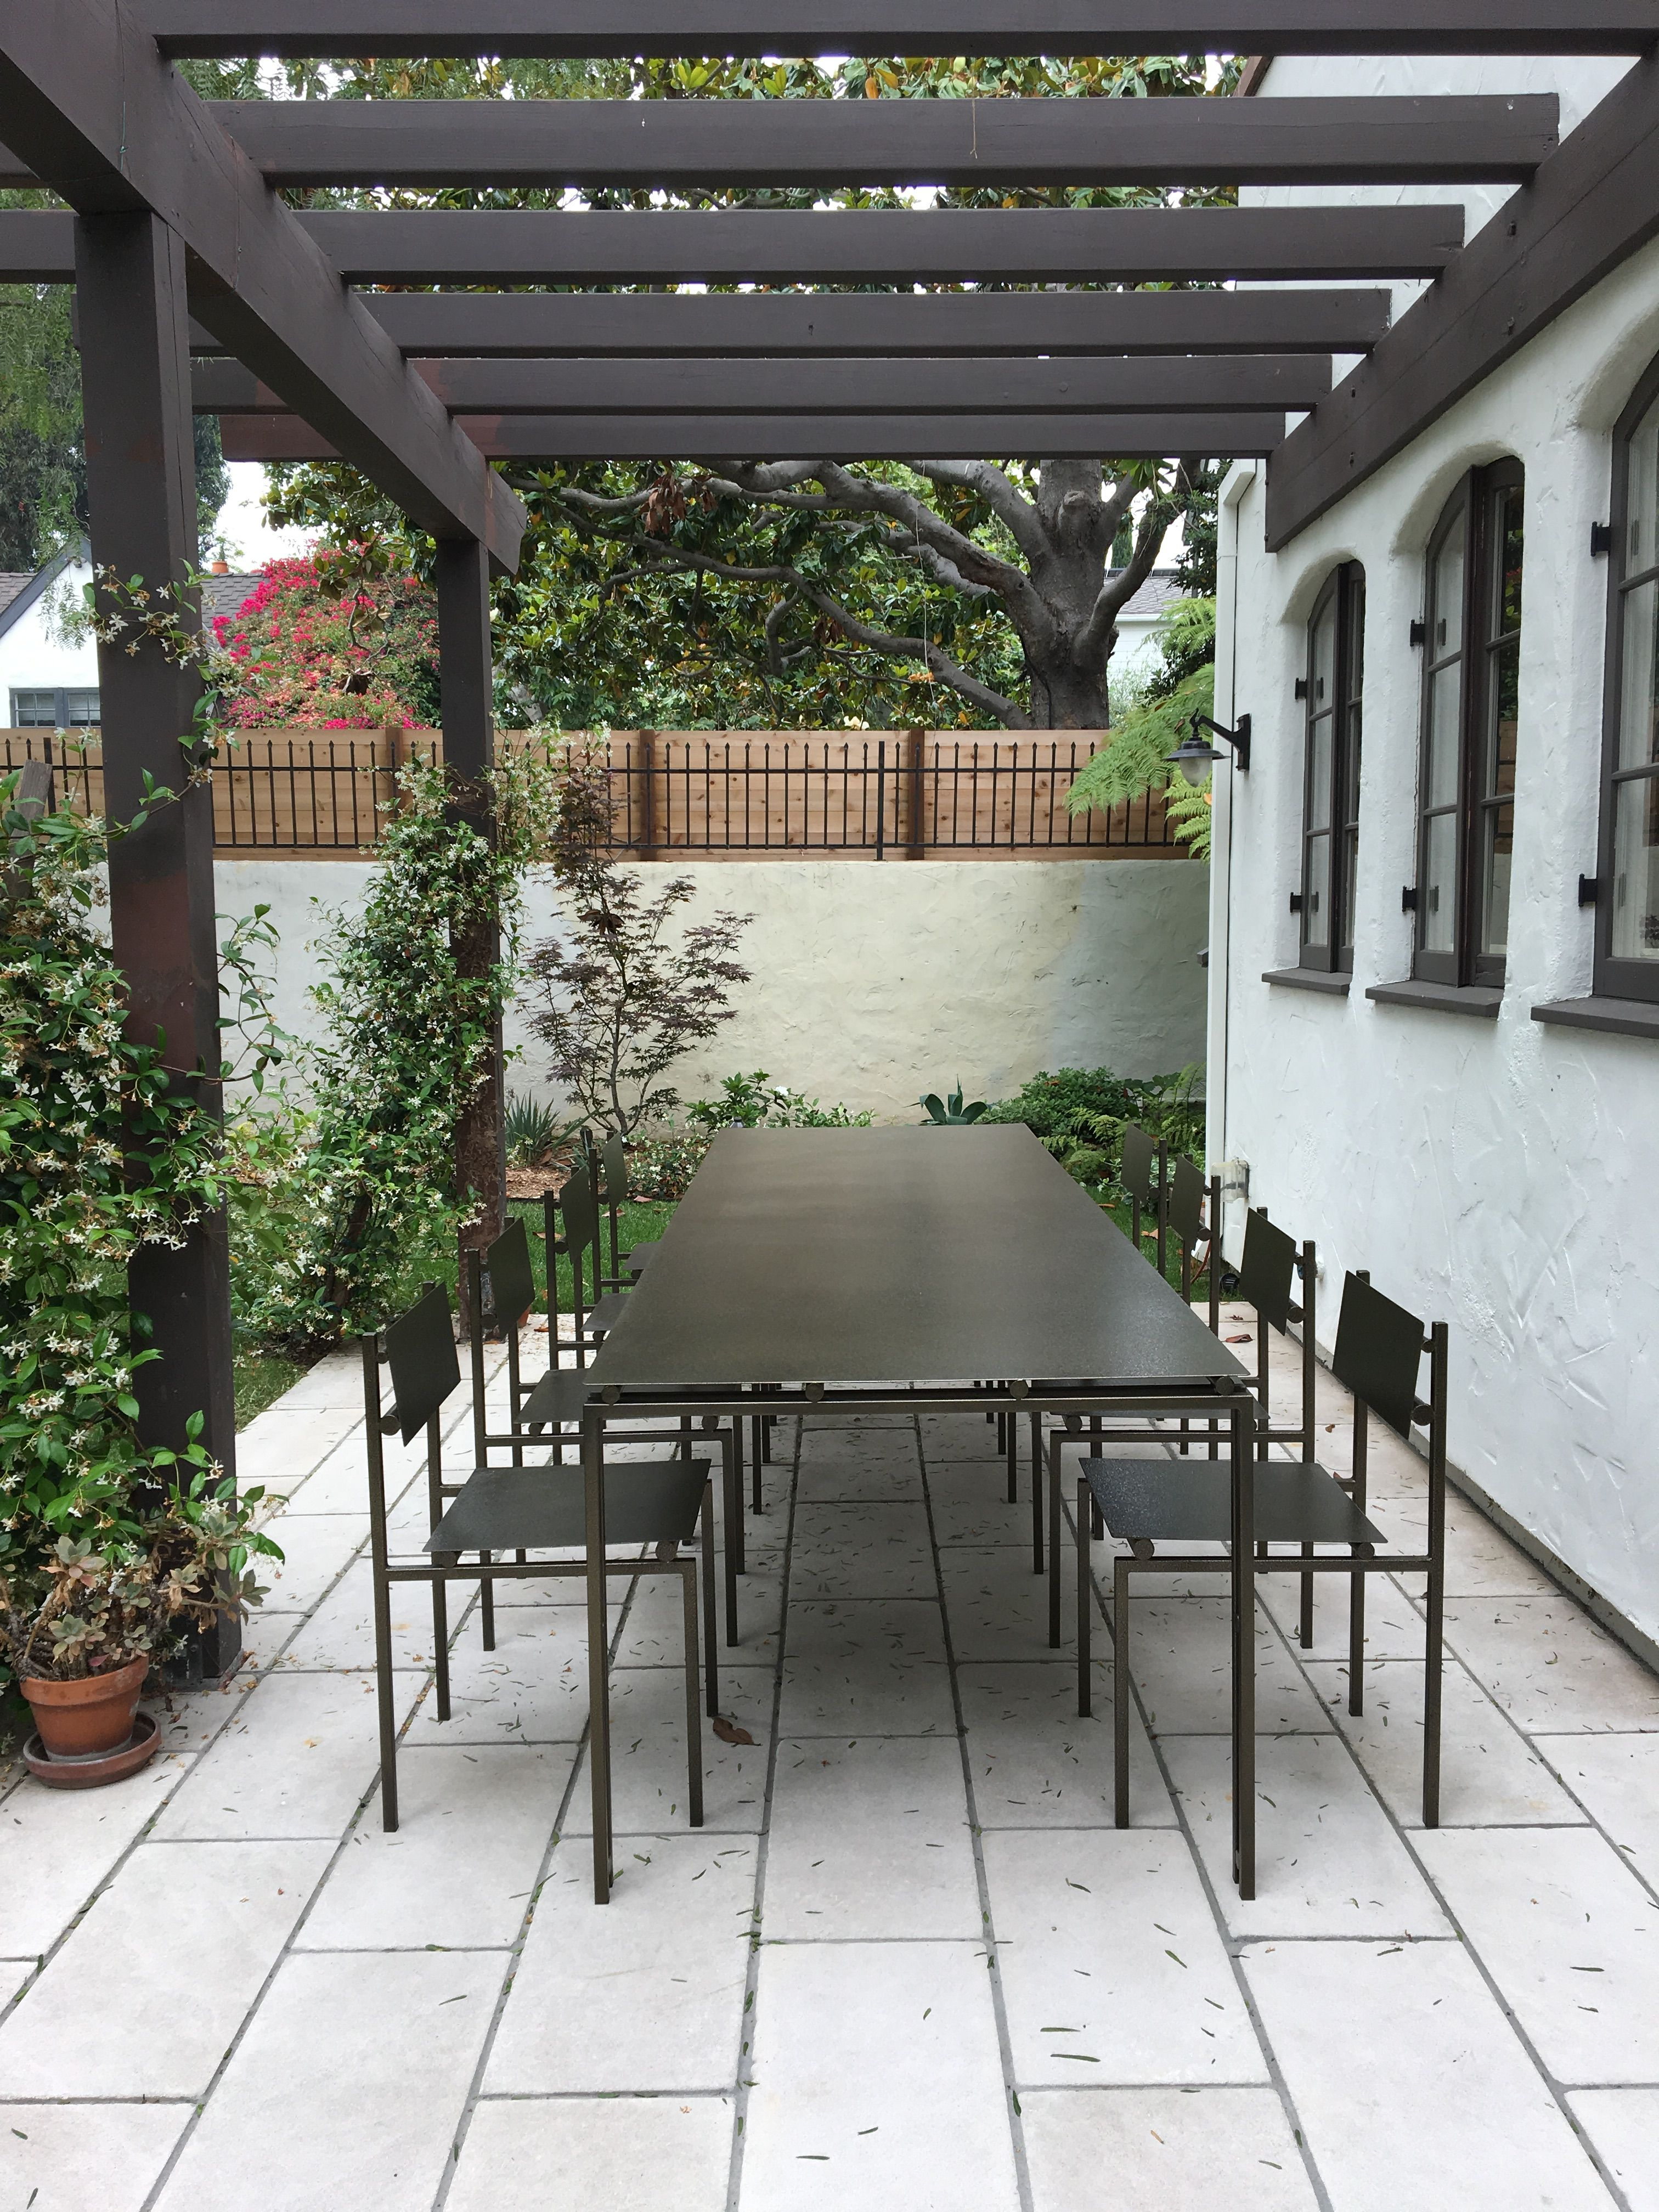 Suspension Metal Dining Table - Large Size product image 2